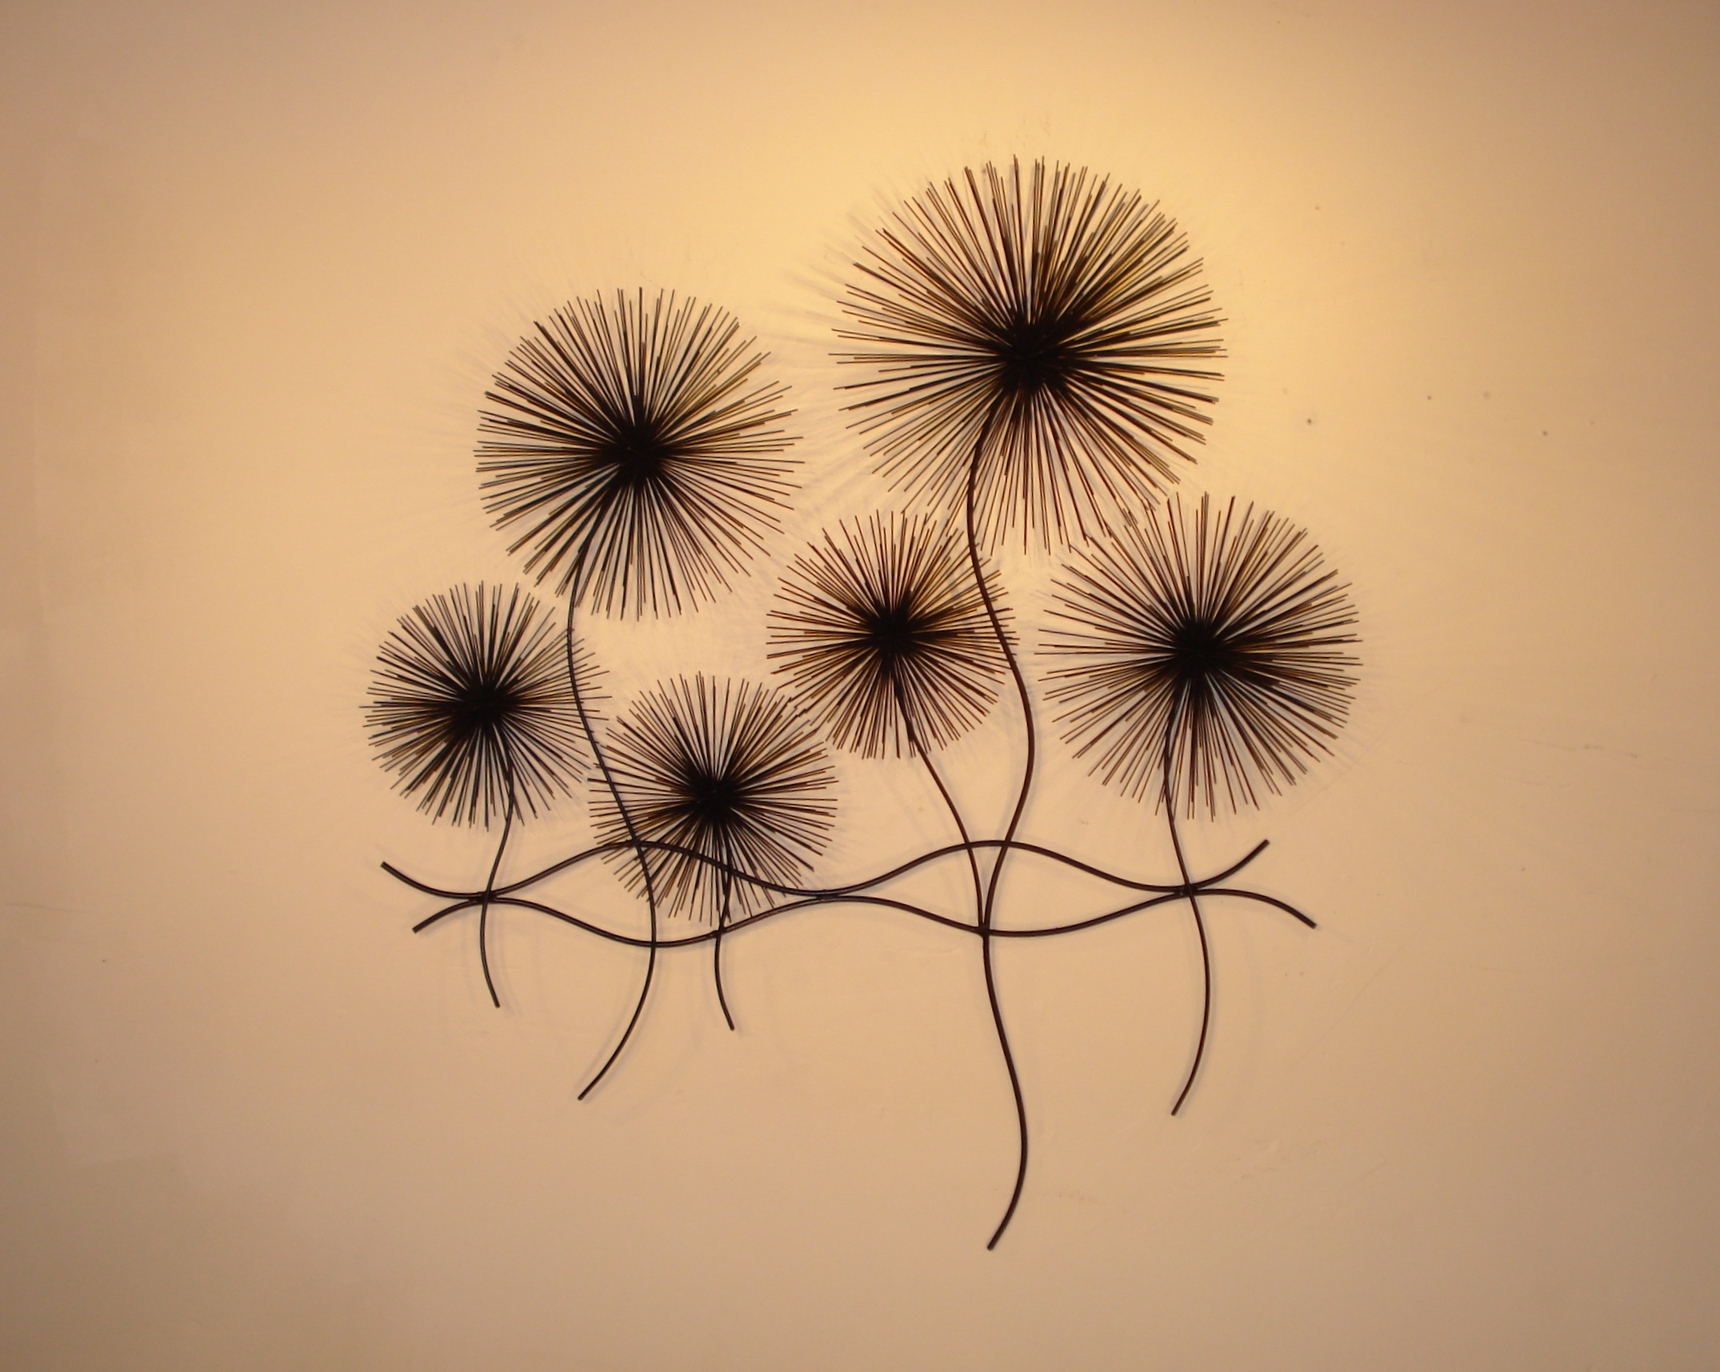 Dandelions Metal Wall Art - Metal Wall Sculpture - Home Decor ...